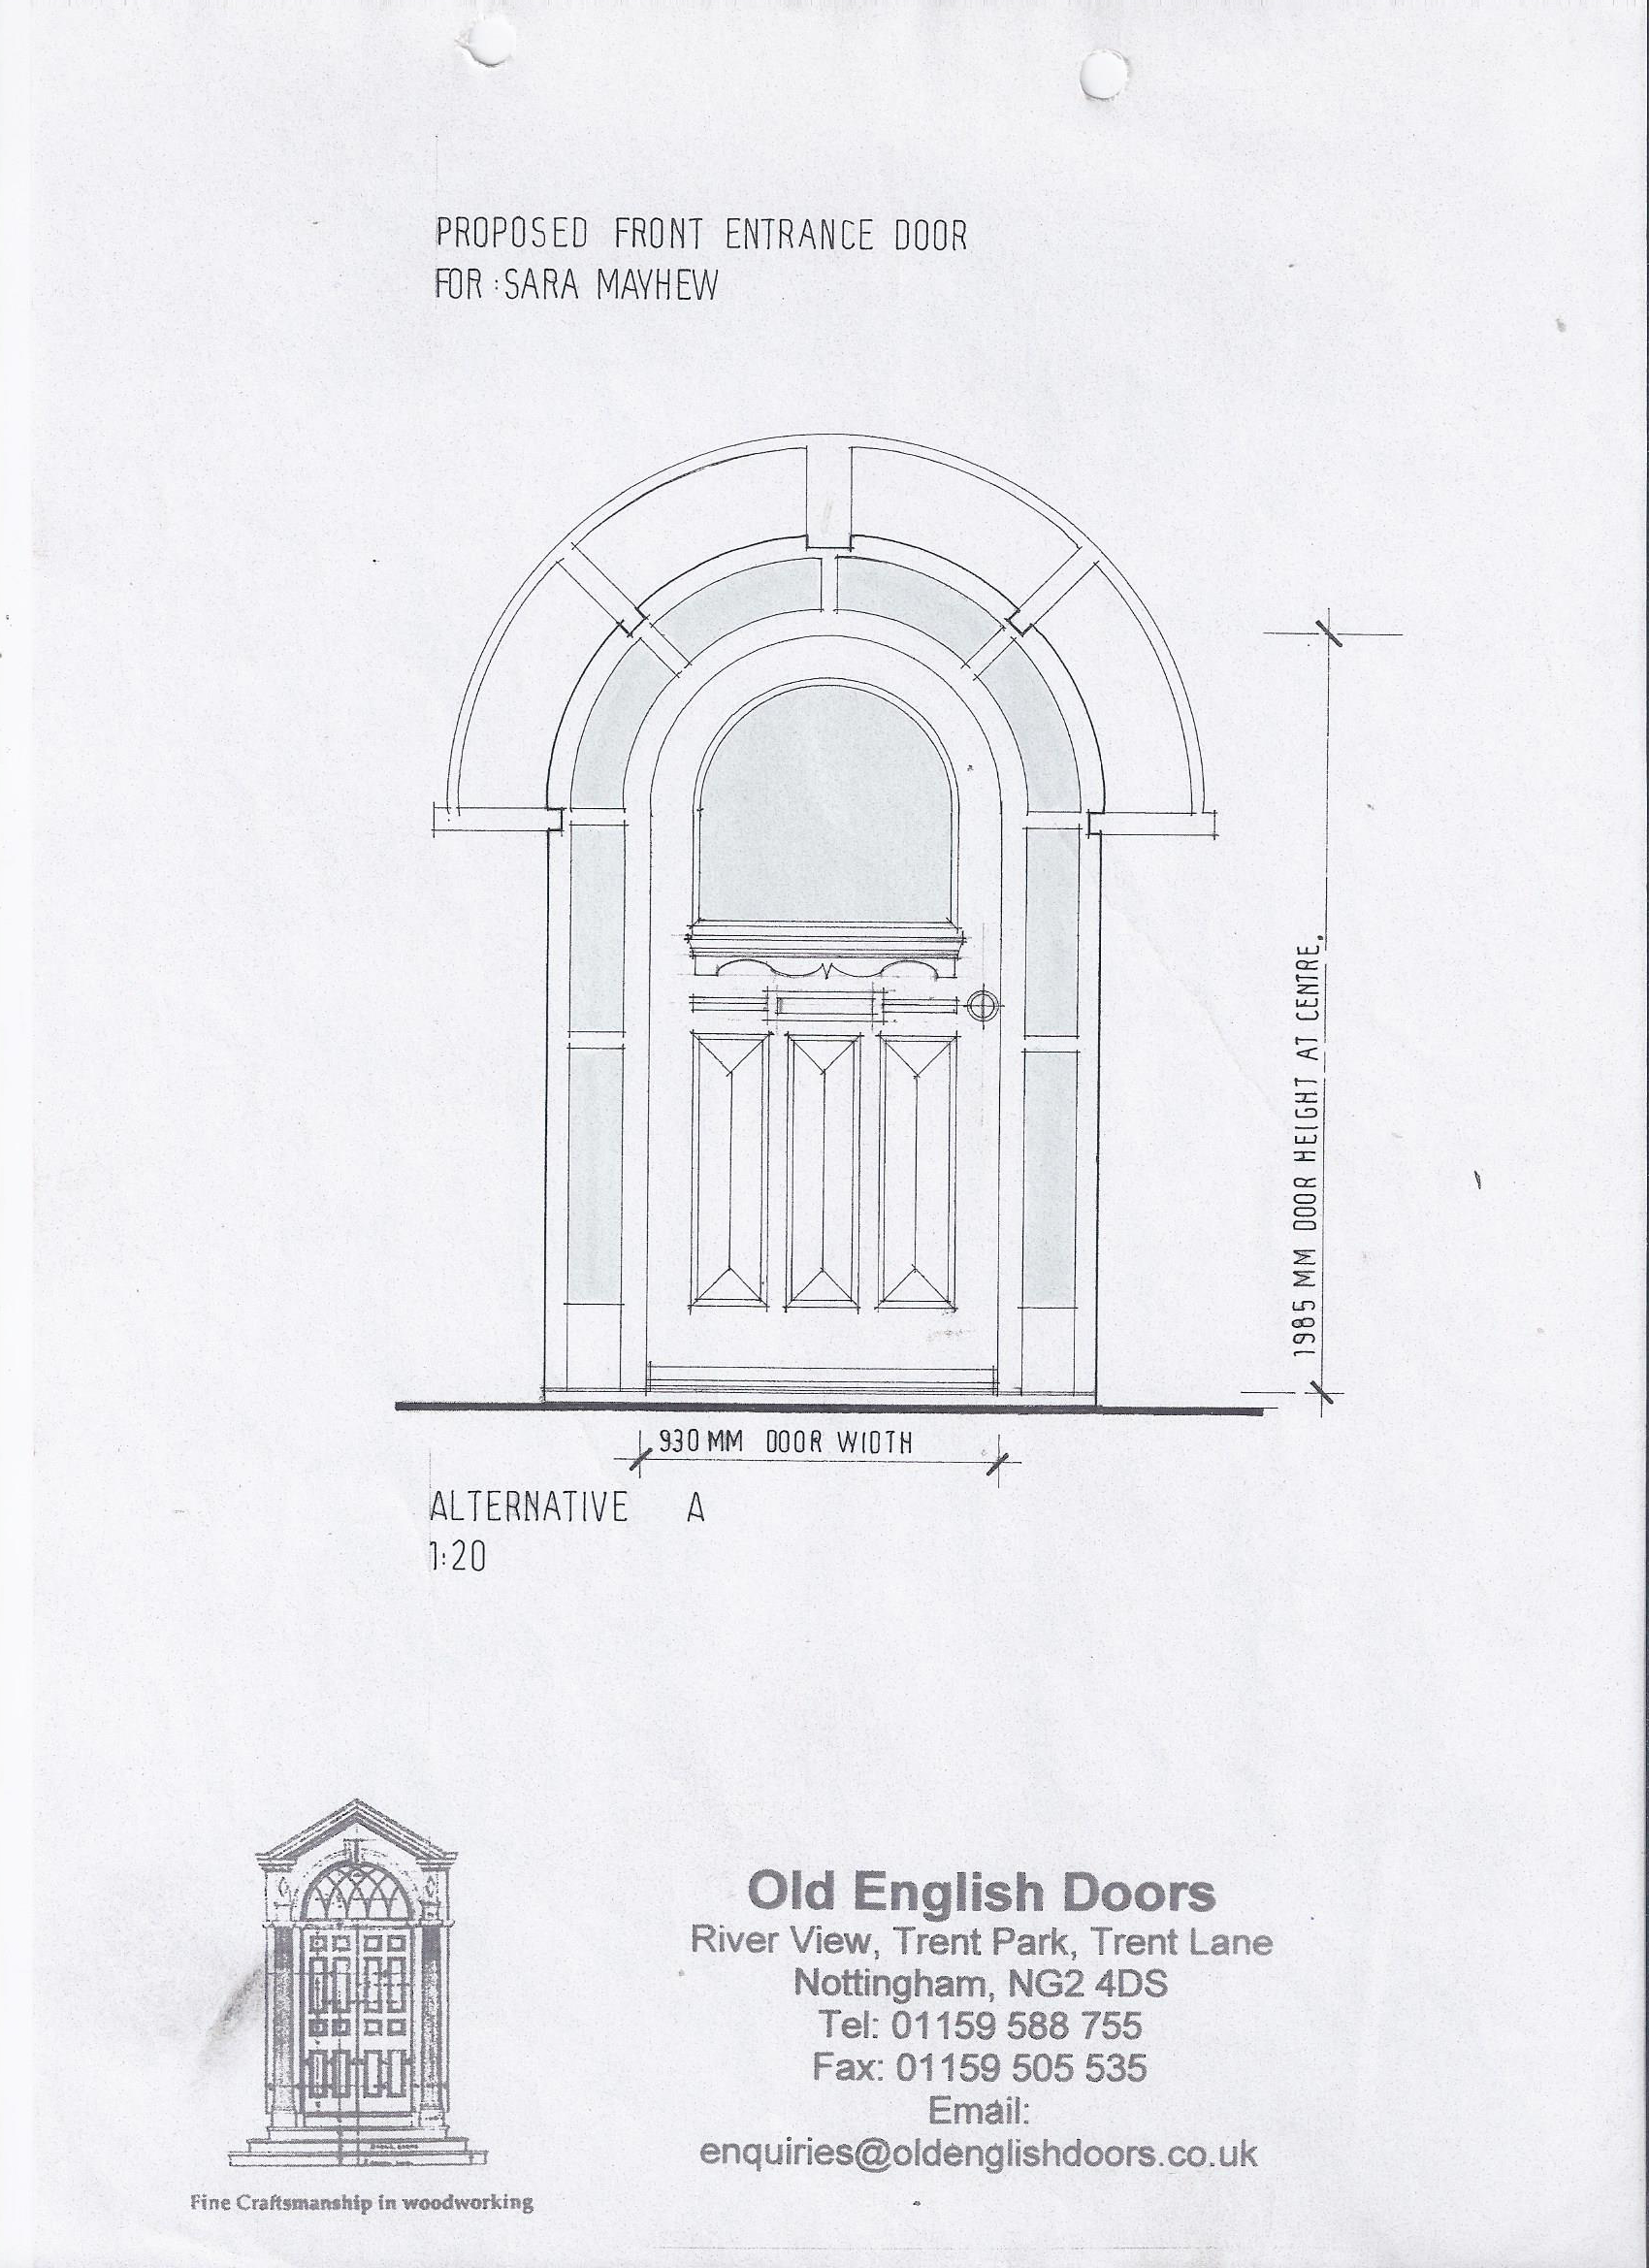 Front Door Drawing Intended Drawing Of 1930u0027s Entrance Door Door Design Service u2022 Custom Doors Designed u0026 Made To Order